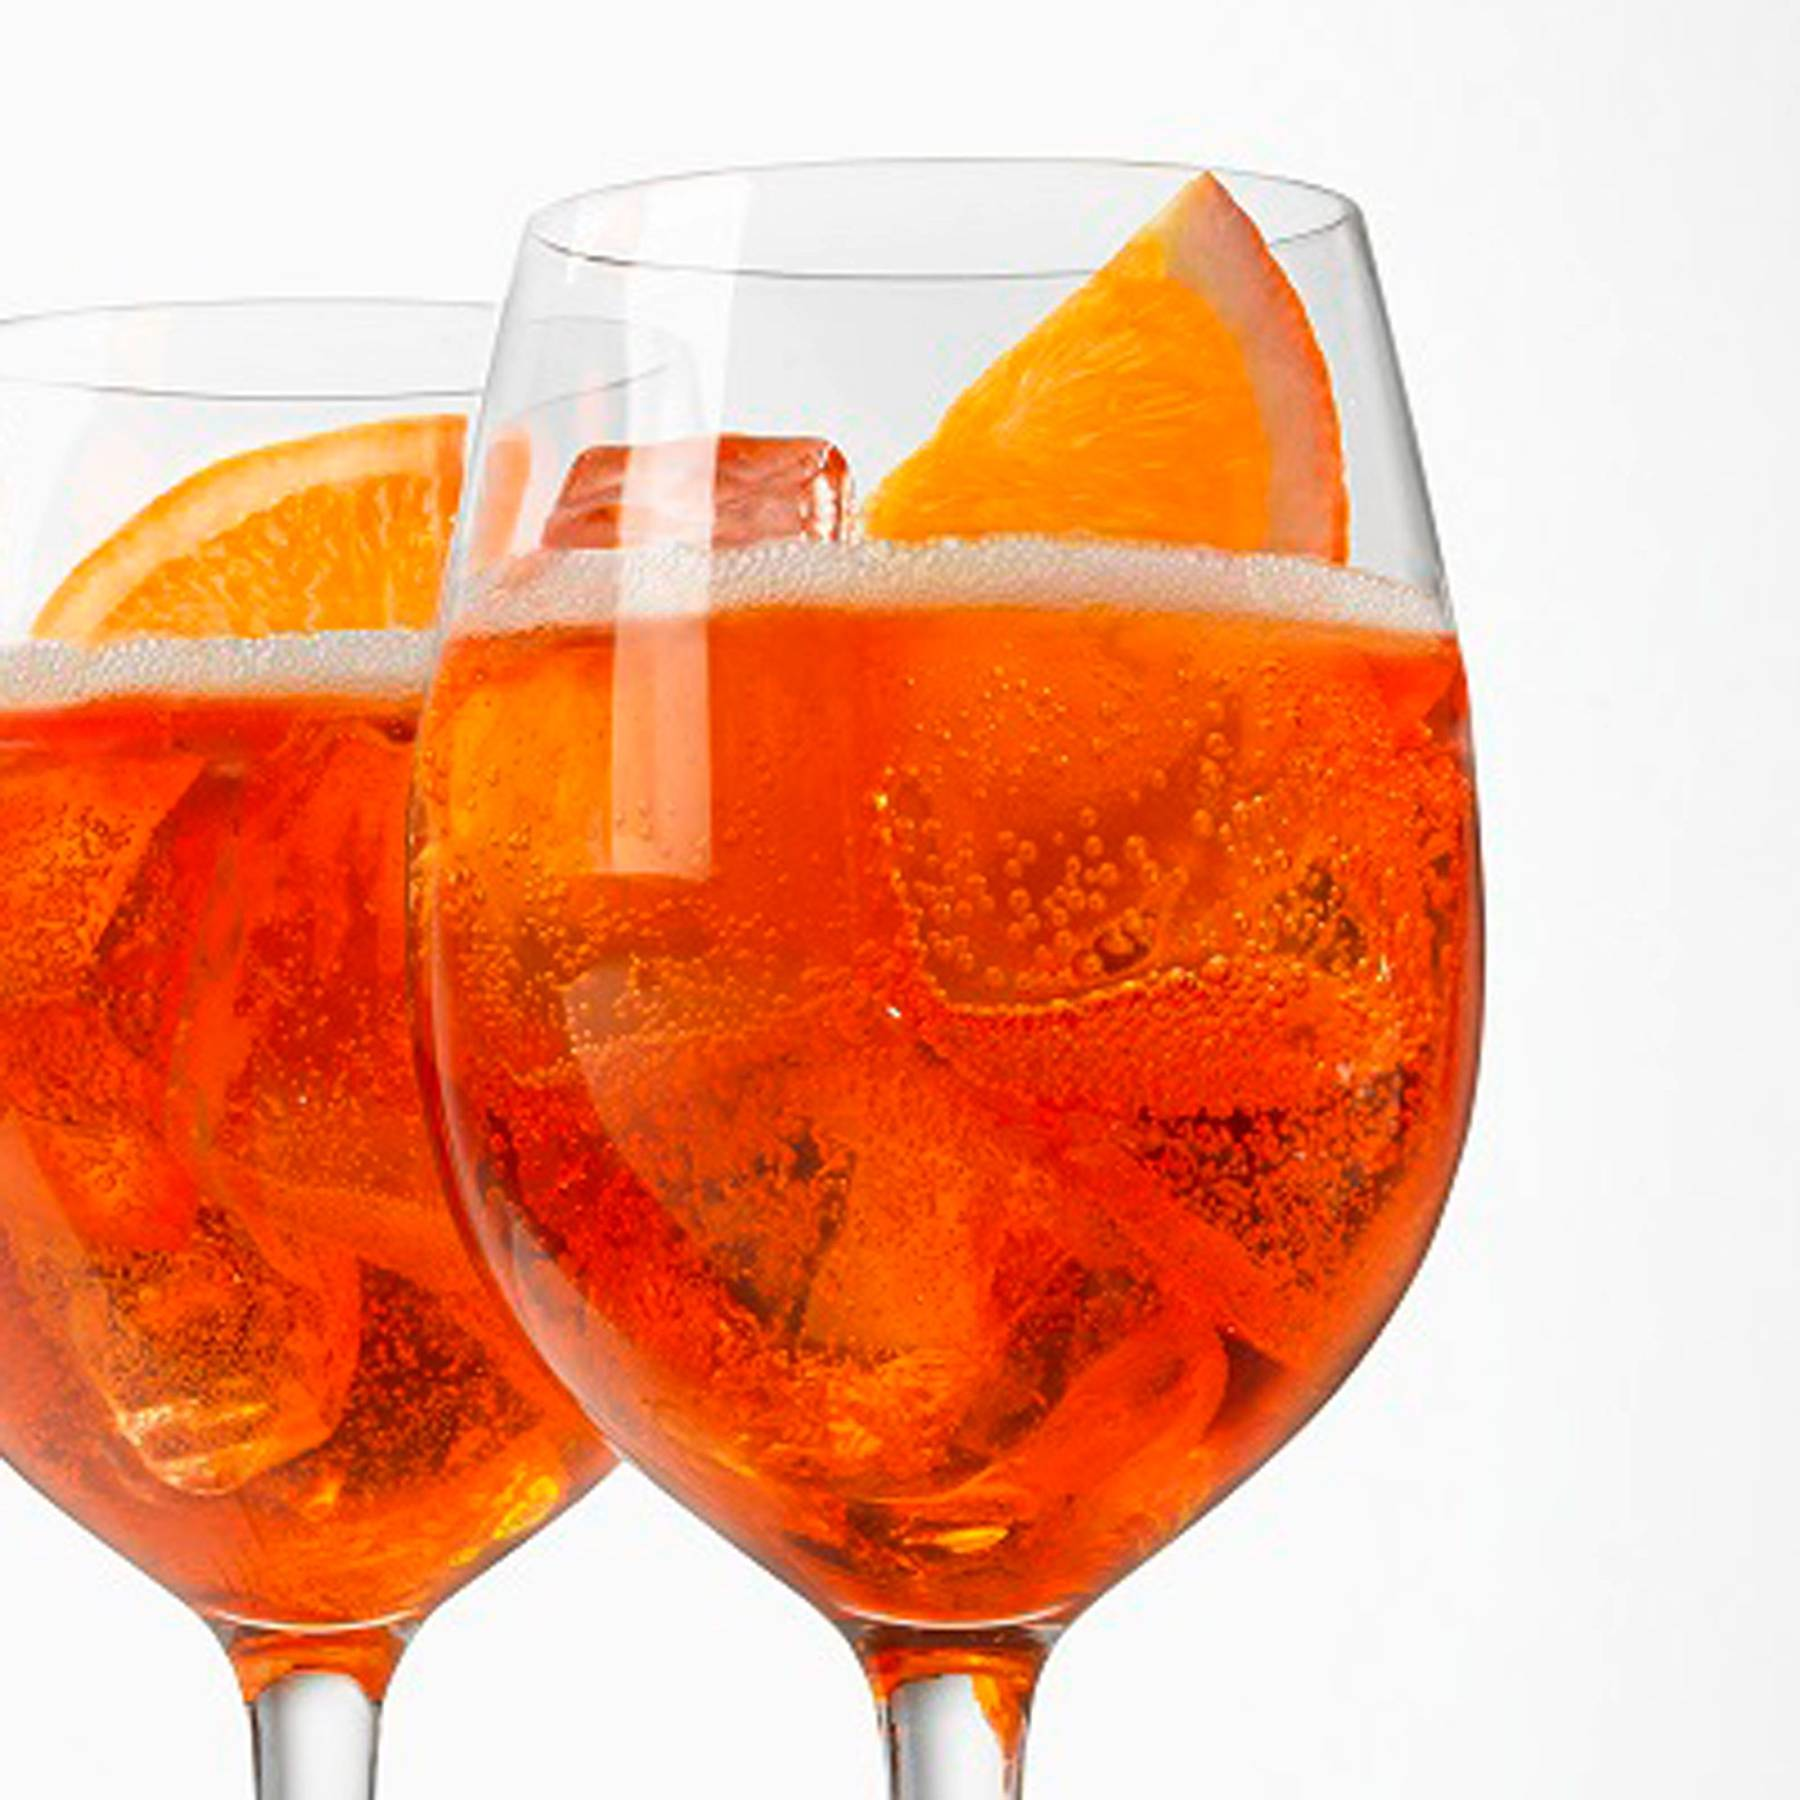 Aperol Spritz Recipe U2013 Easy Cocktail Recipes U0026 Aperitifs | House U0026 Garden